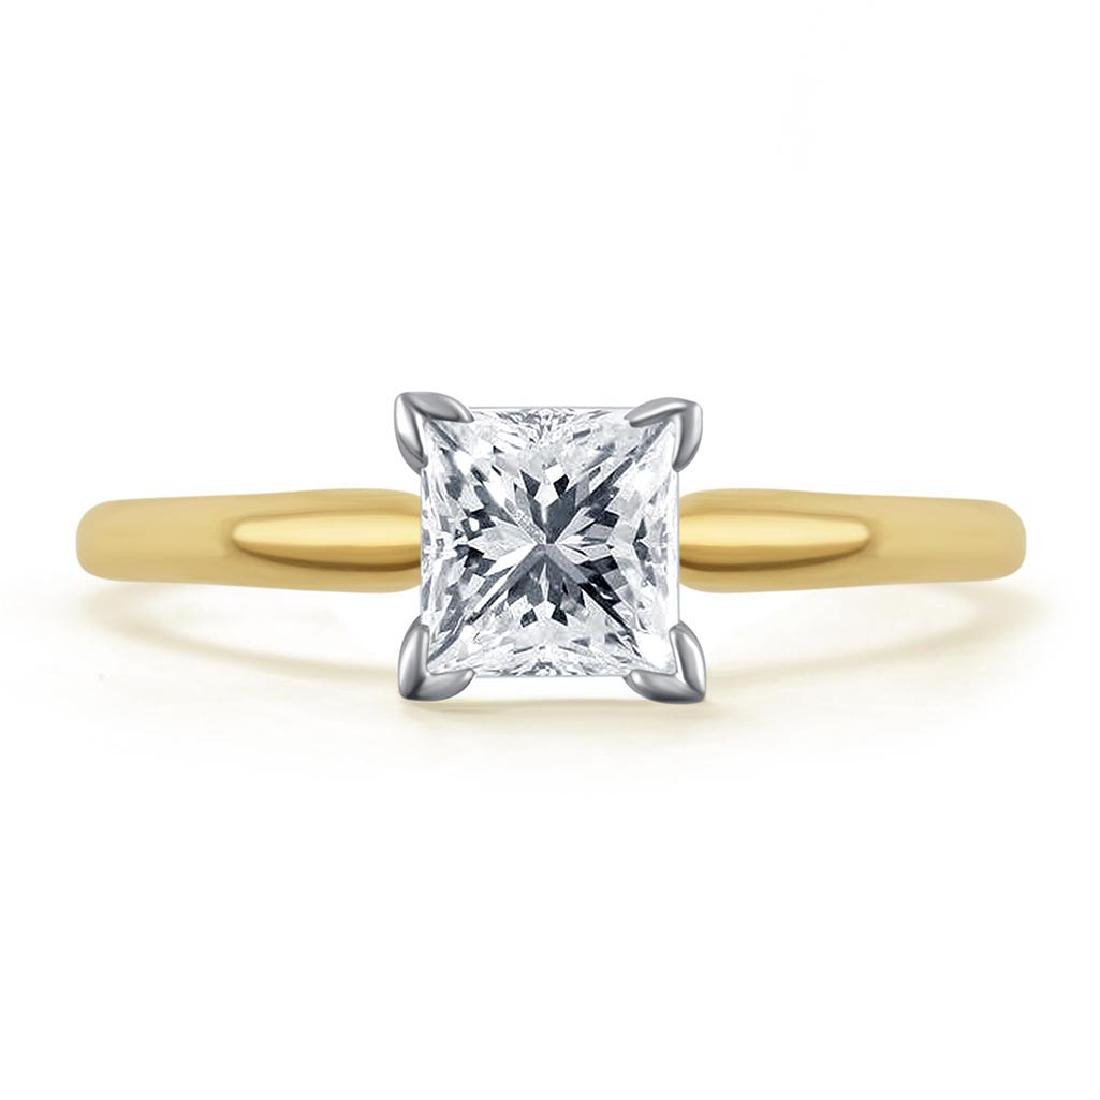 CERTIFIED 1.03 CTW PRINCESS E/VVS2 SOLITAIRE RING IN 14